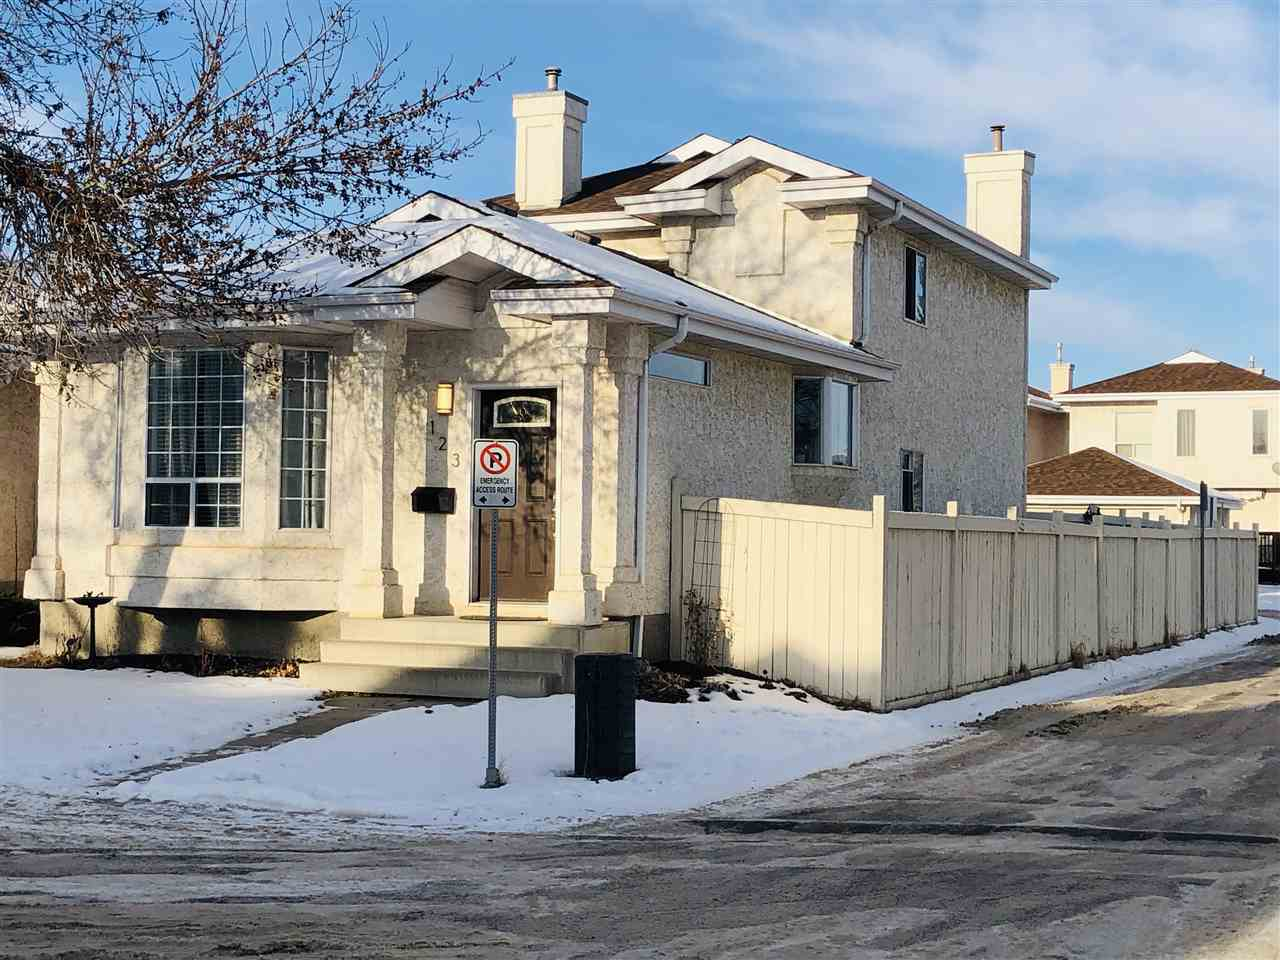 OUTSTANDING RIVER VALLEY VALUE! This Impeccable 3 Bedroom, (2) 4PC Bath home presents: OPEN PLAN KITCHEN w/4  updated STAINLESS STEEL  Appliances & NEW  Stainless Steel hood fan, Upgraded Baths w/self purging jet tub, New Lighting package, Freshly Painted throughout, & 2 Massive Bedrooms Up - plus 1 in the 4th level and a Sprawling Family Room w/gas fireplace & den. NEW SHINGLES 2017!! From the time you enter this home through the spacious foyer you won't be disappointed - you'll find Lots of Natural Light throughout to include the formal L/R, Bight & Cheery Kitchen, full size Dining area & Spacious Open Family Room & Den. You'll find tons of storage, front loading Washer & Dryer on the 4th level too!. The sliding doors off the lower level lead out to the deck, fully fenced newly landscaped yard w/entry to the double concrete pad that backs onto the lane. This stunning location is just steps to the North Saskatchewan River Valley walking trails, not to mention close to the off leash dog park! A MUST SEE!!